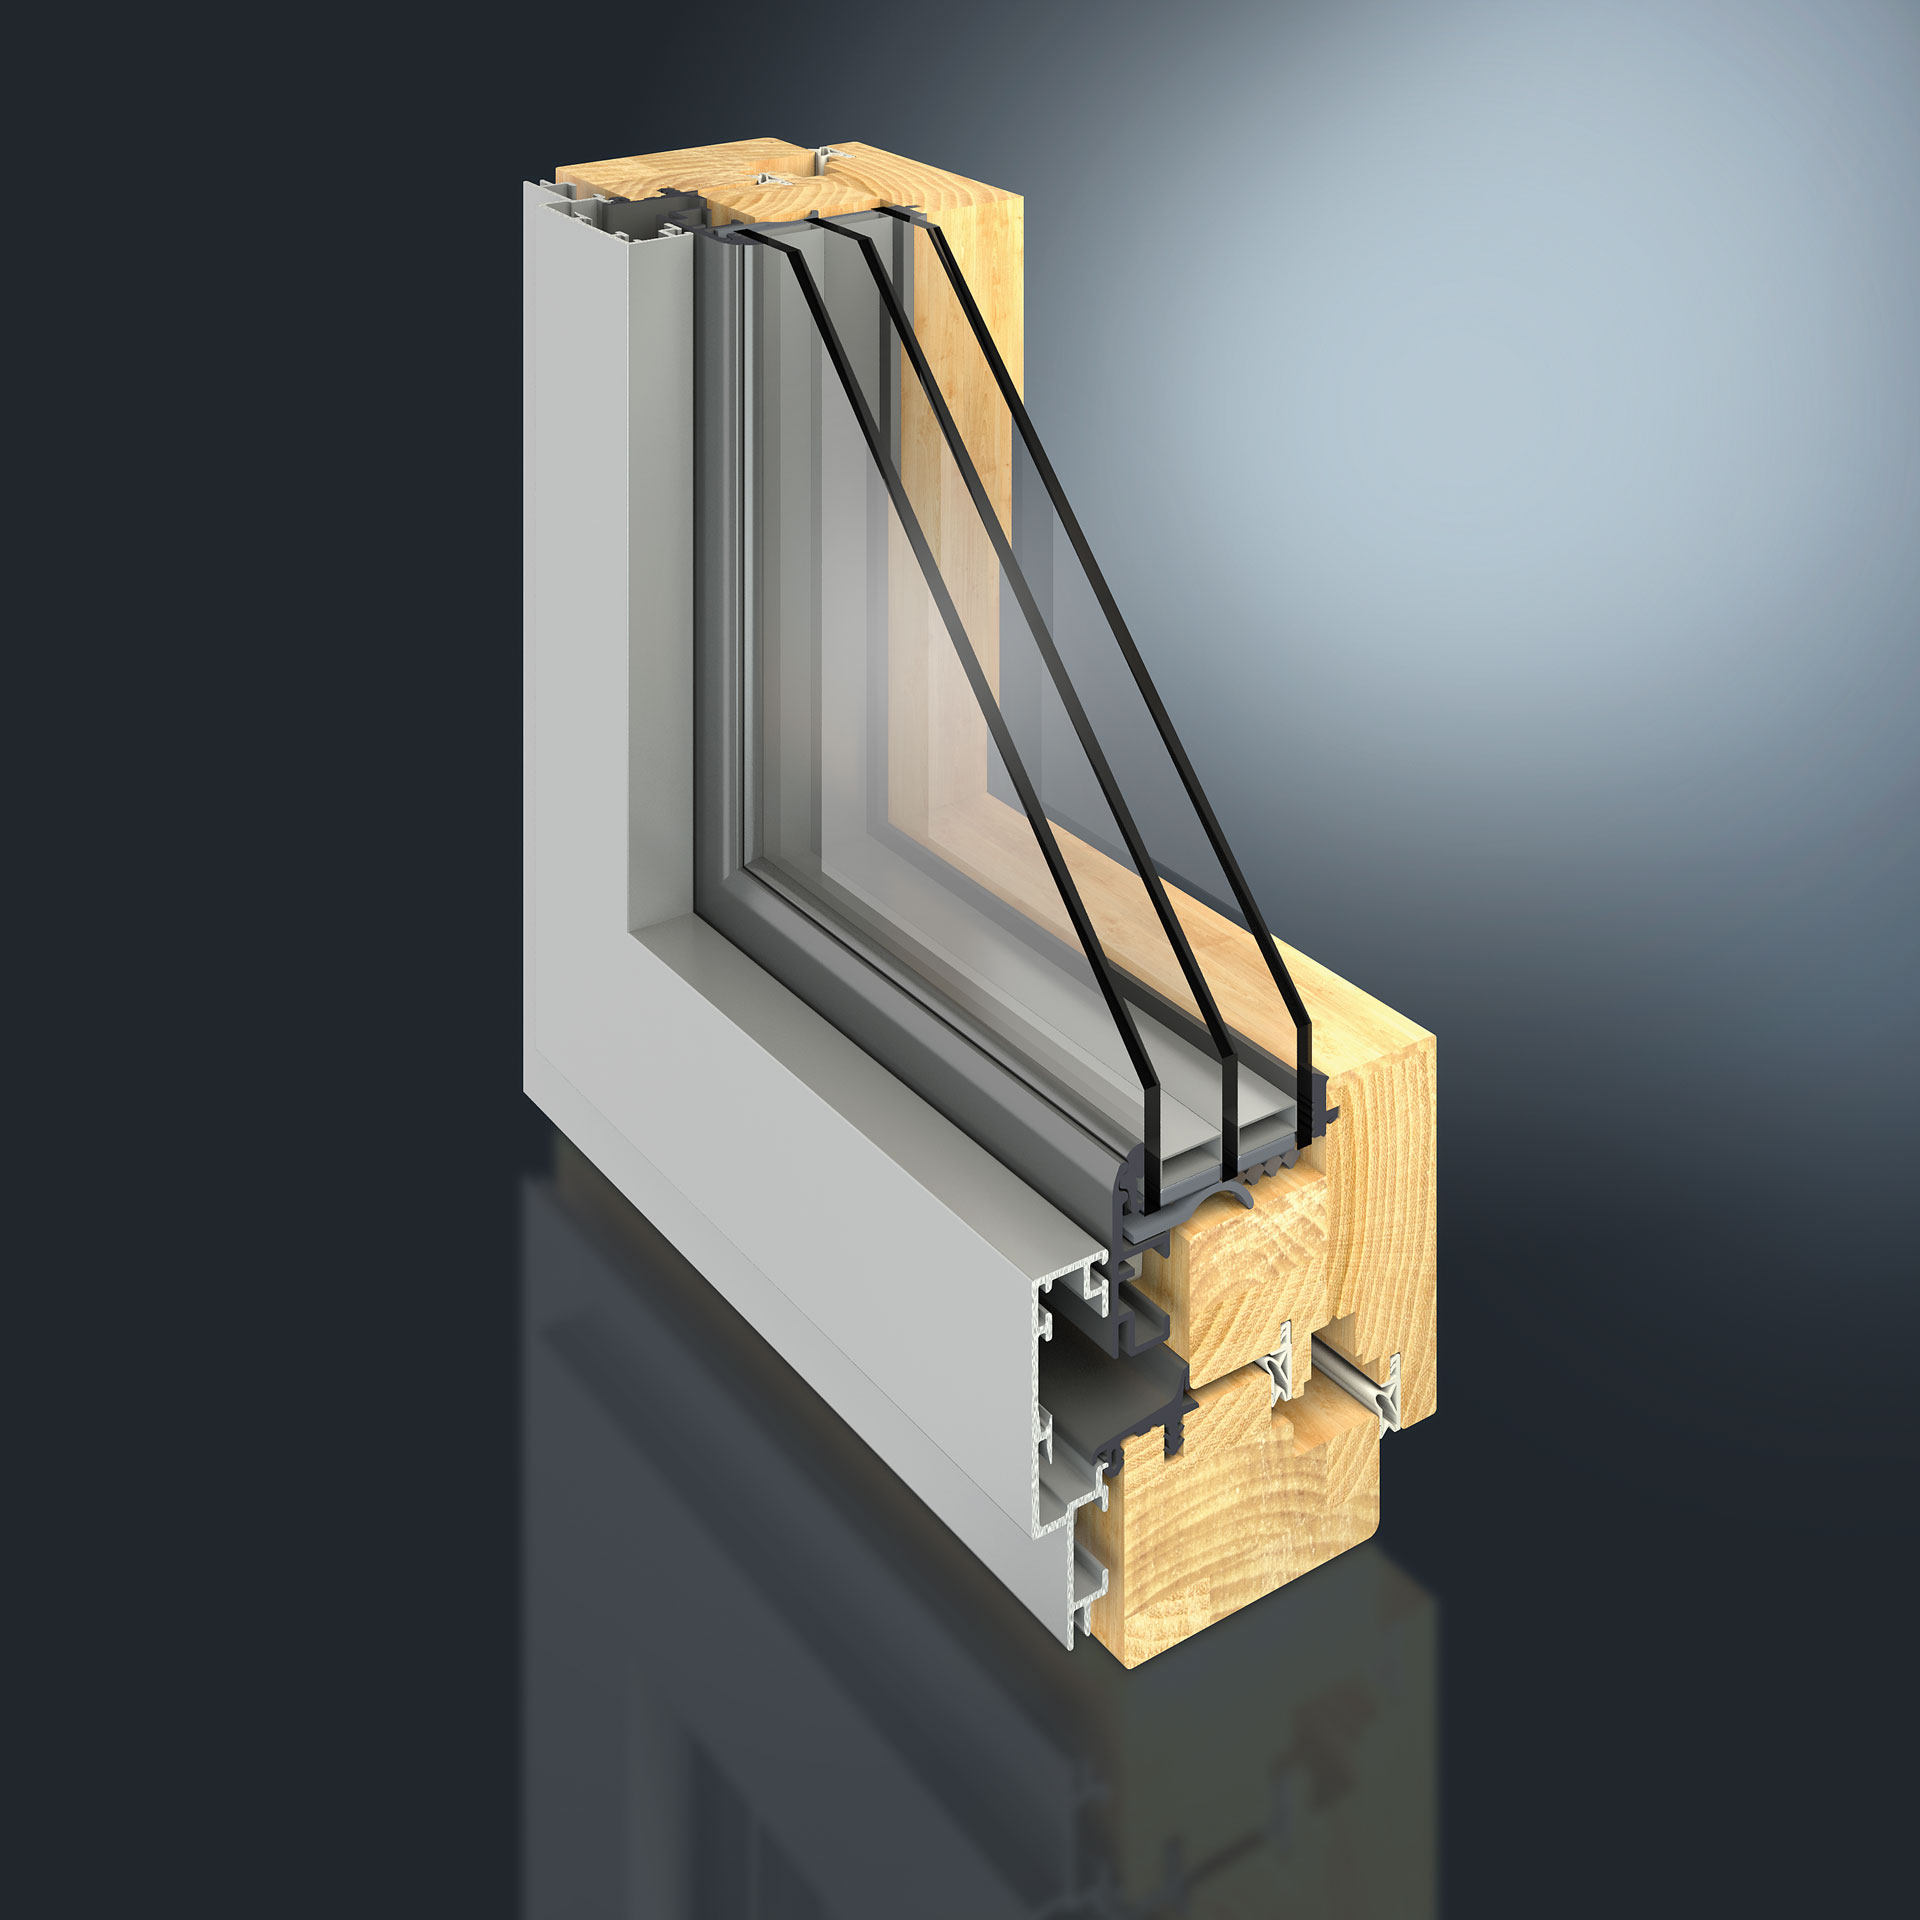 The reduced view width of 50 mm offers a whole new range of options in terms of technology and appearance. The GUTMANN MIRA contour integral 50 window system has slim frame facings with a half-concealed sash.